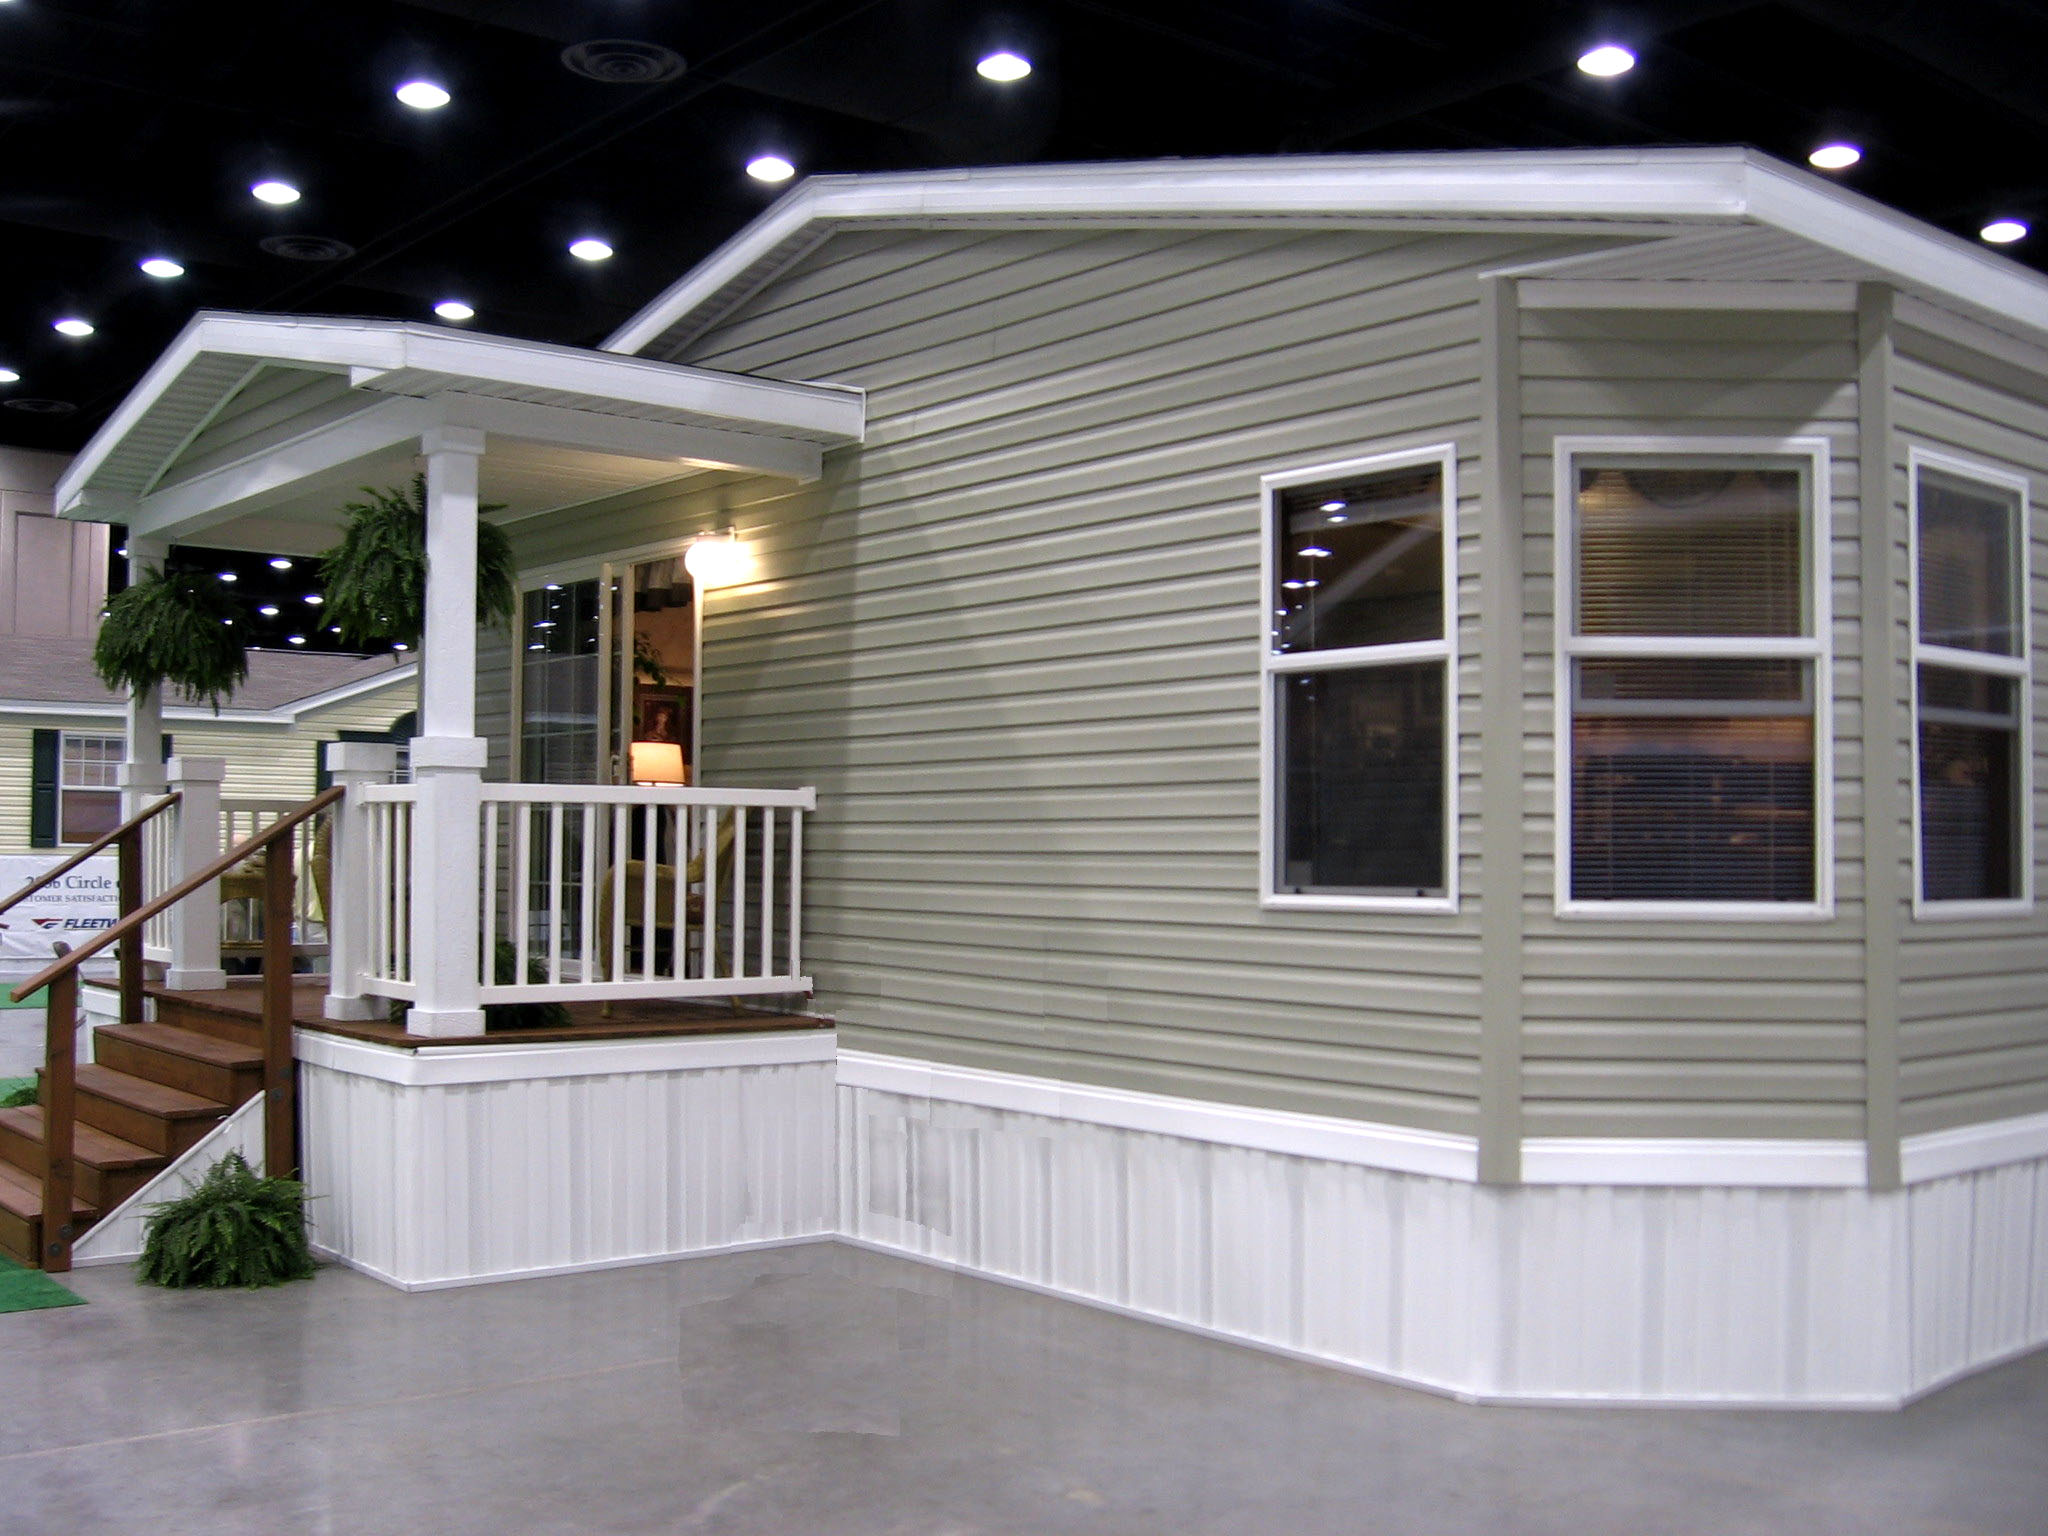 Small-Mobile-Homes-with-Porches Ideas For Small Mobile Home Covered Porch on ideas for small mobile home bathroom, small front porch, decorating a screened in porch,